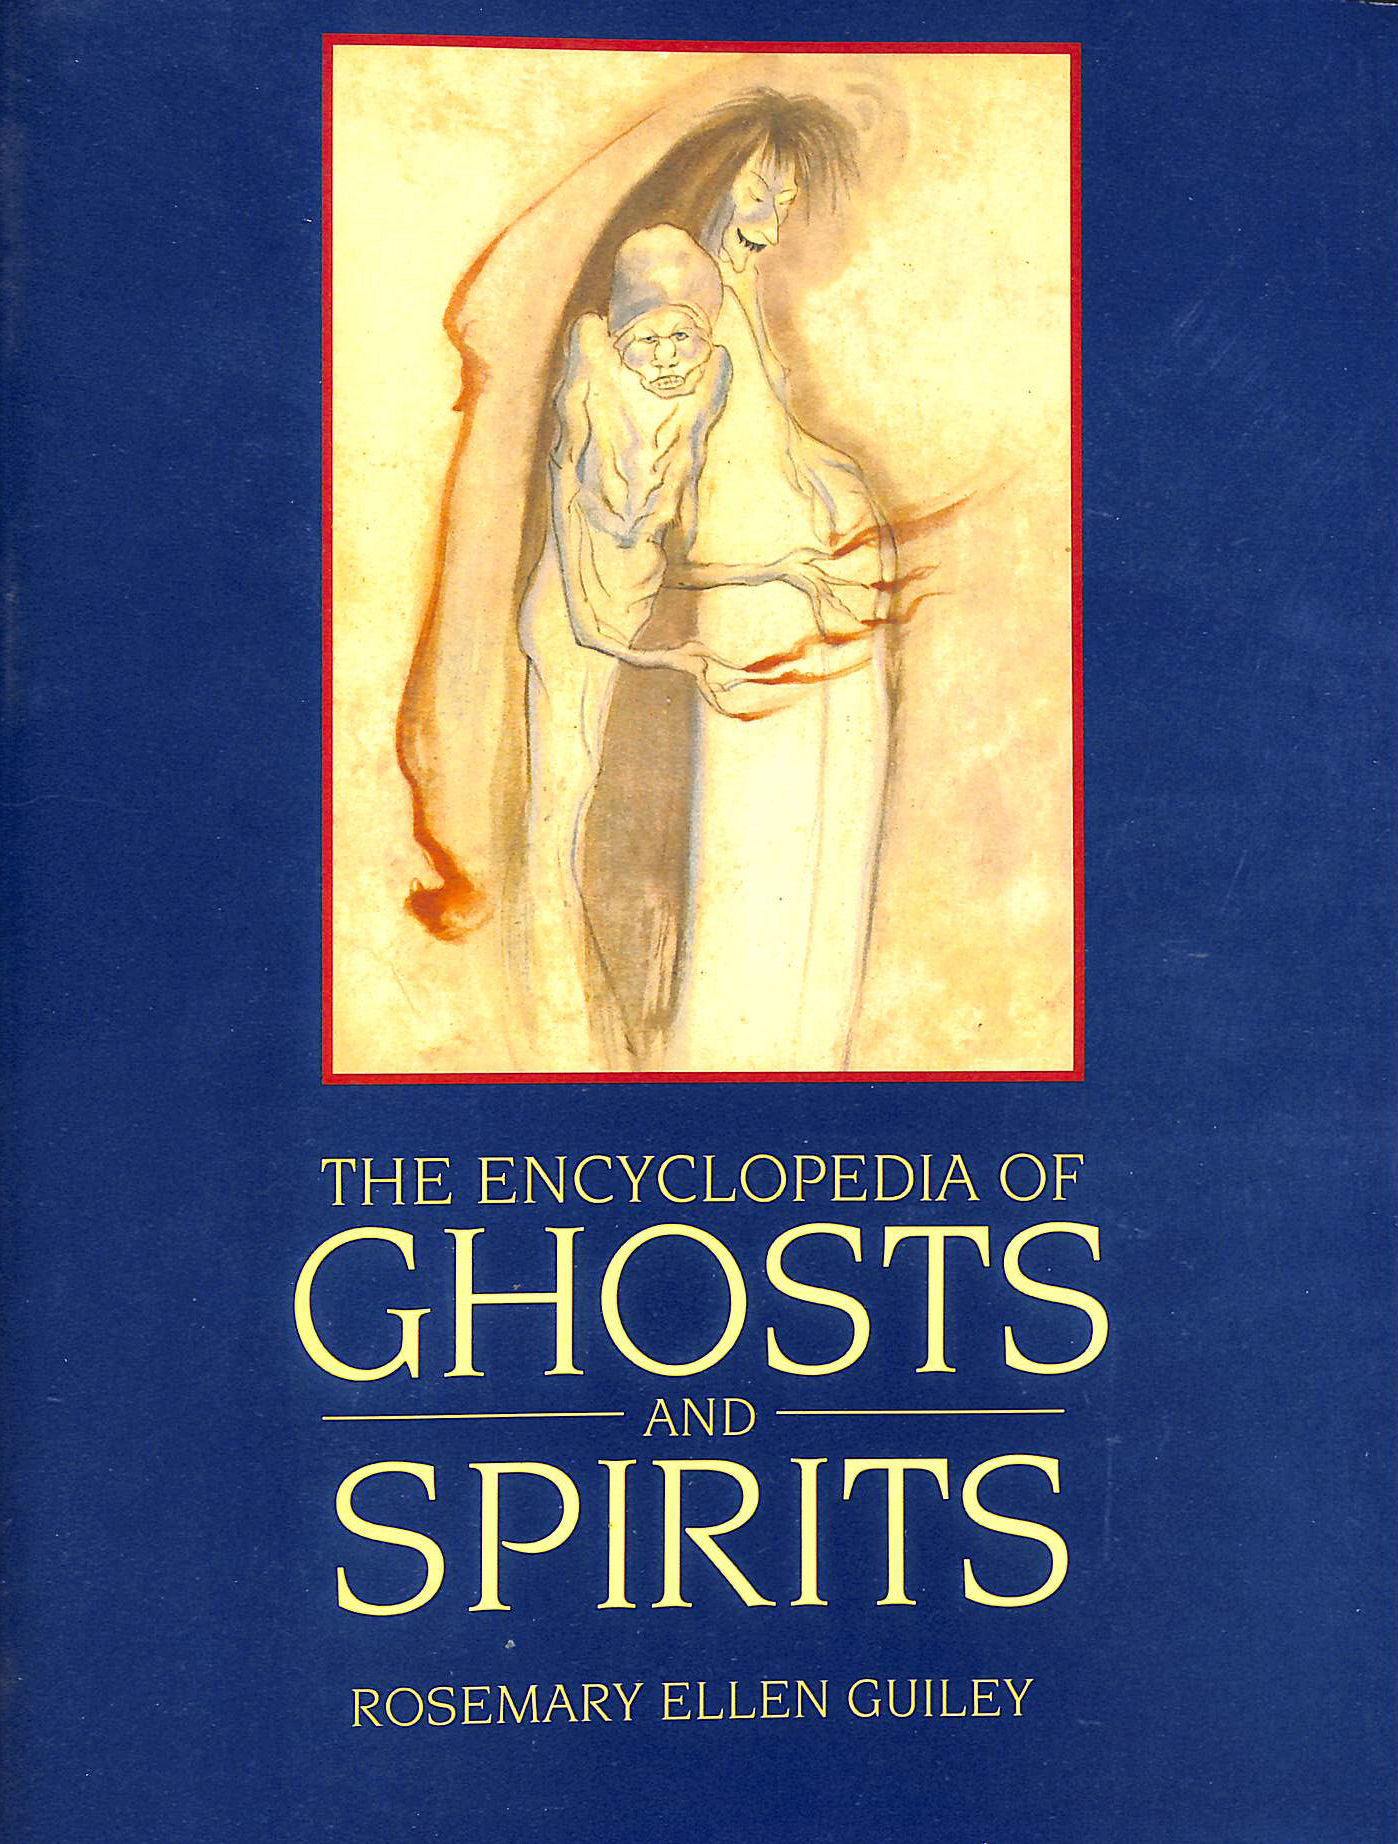 Image for Encyclopaedia of Ghosts and Spirits